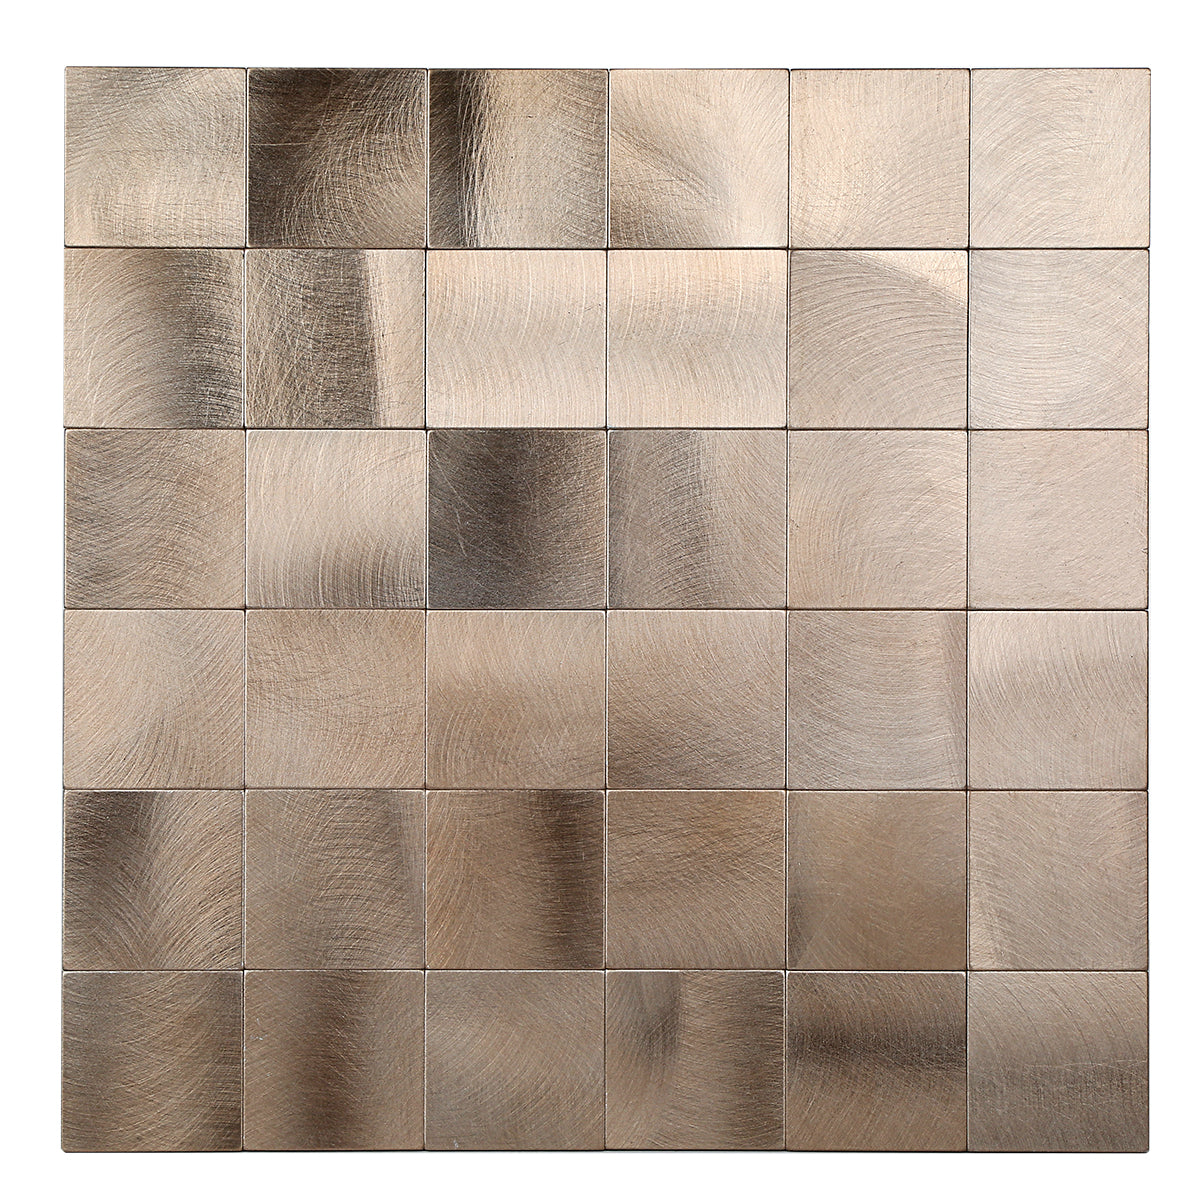 Decopus Copper Metal Tile Backsplash Peel and Stick (Square AC50 Copper Matte 5pc/Pack 12 x12'', 1.6''), Self Adhesive Tile